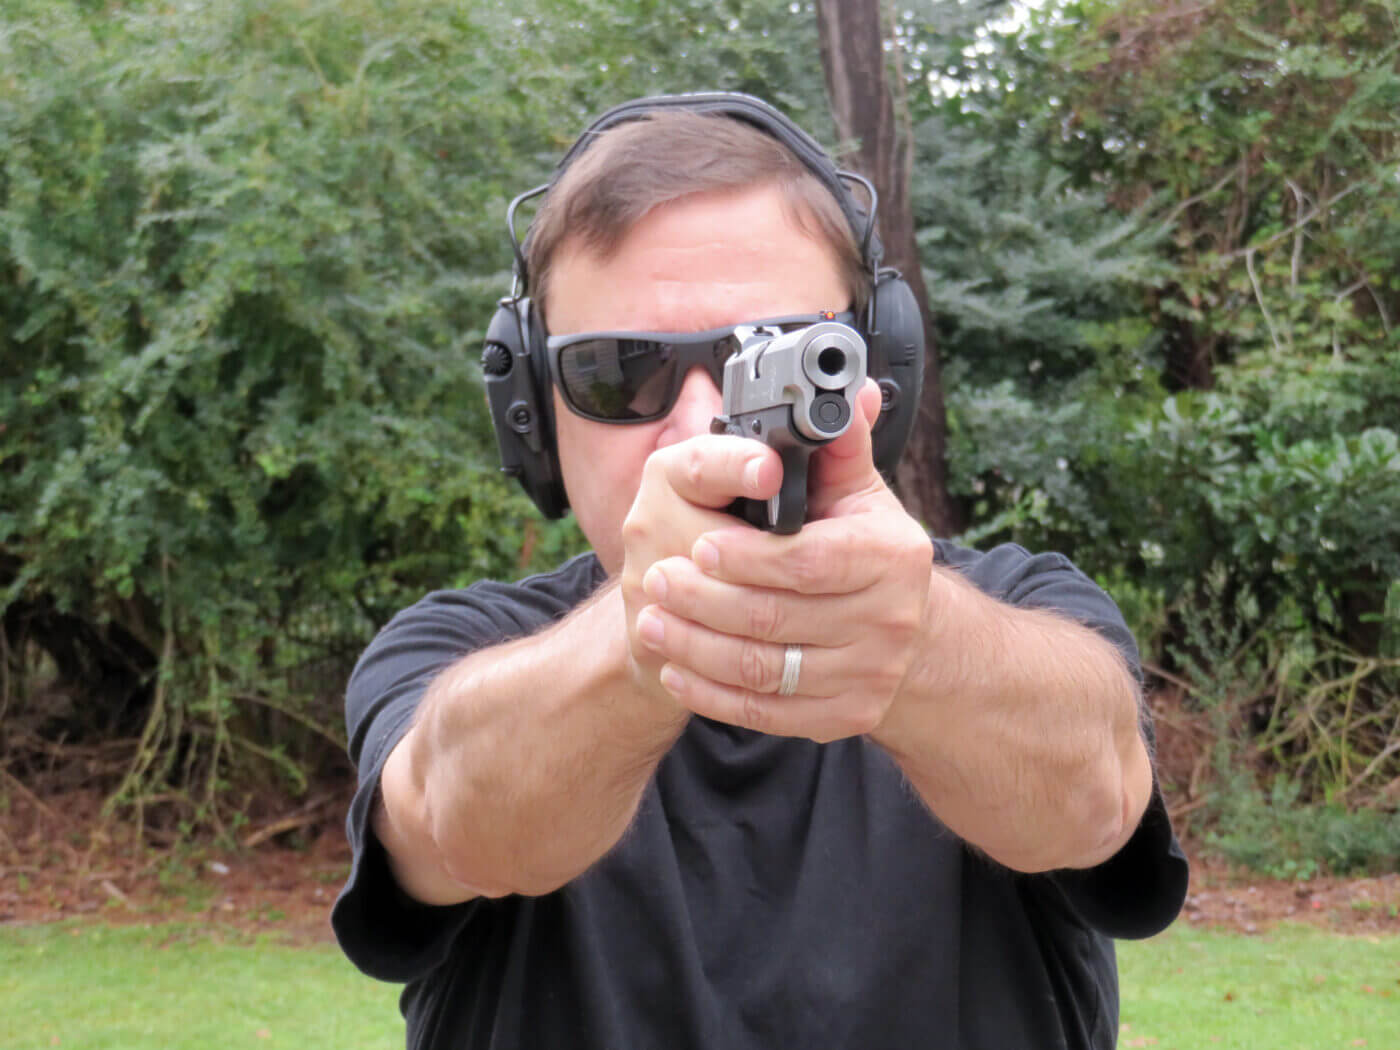 Man shooting the Springfield Armory EMP Concealed Carry Contour pistol on the range